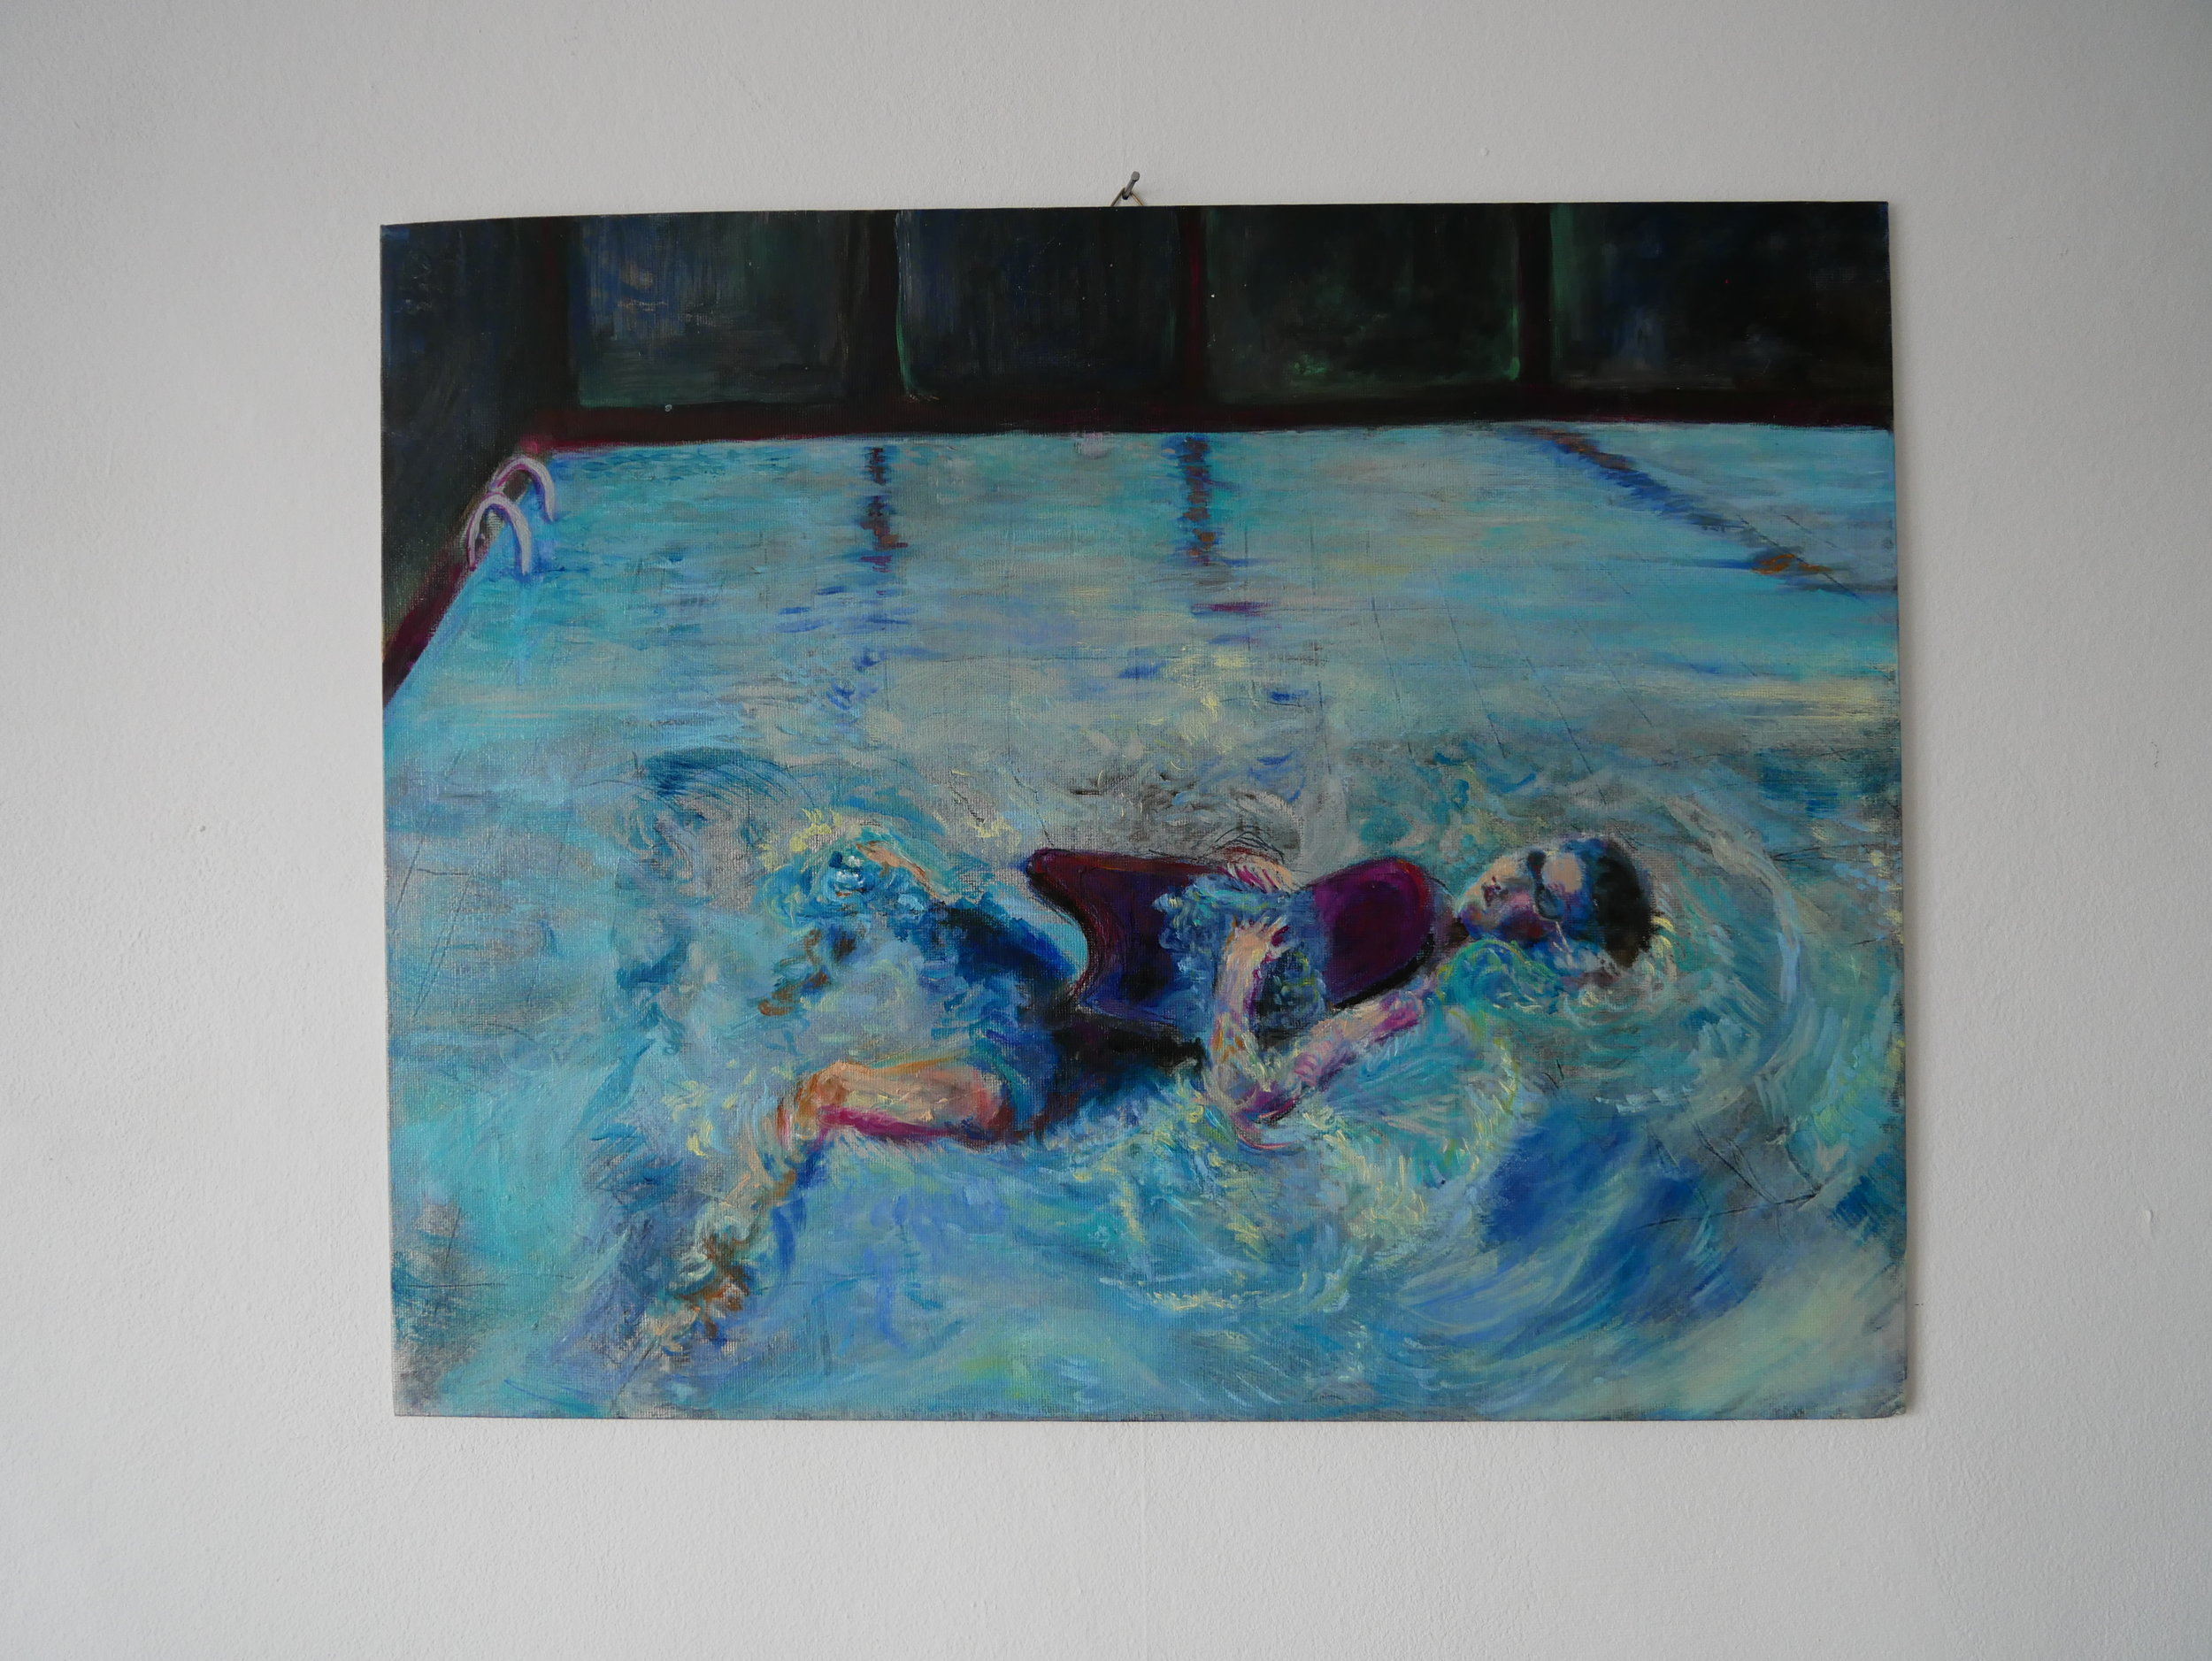 Backstroke 1,  Oil on cardboard. 50 x 40 cm.